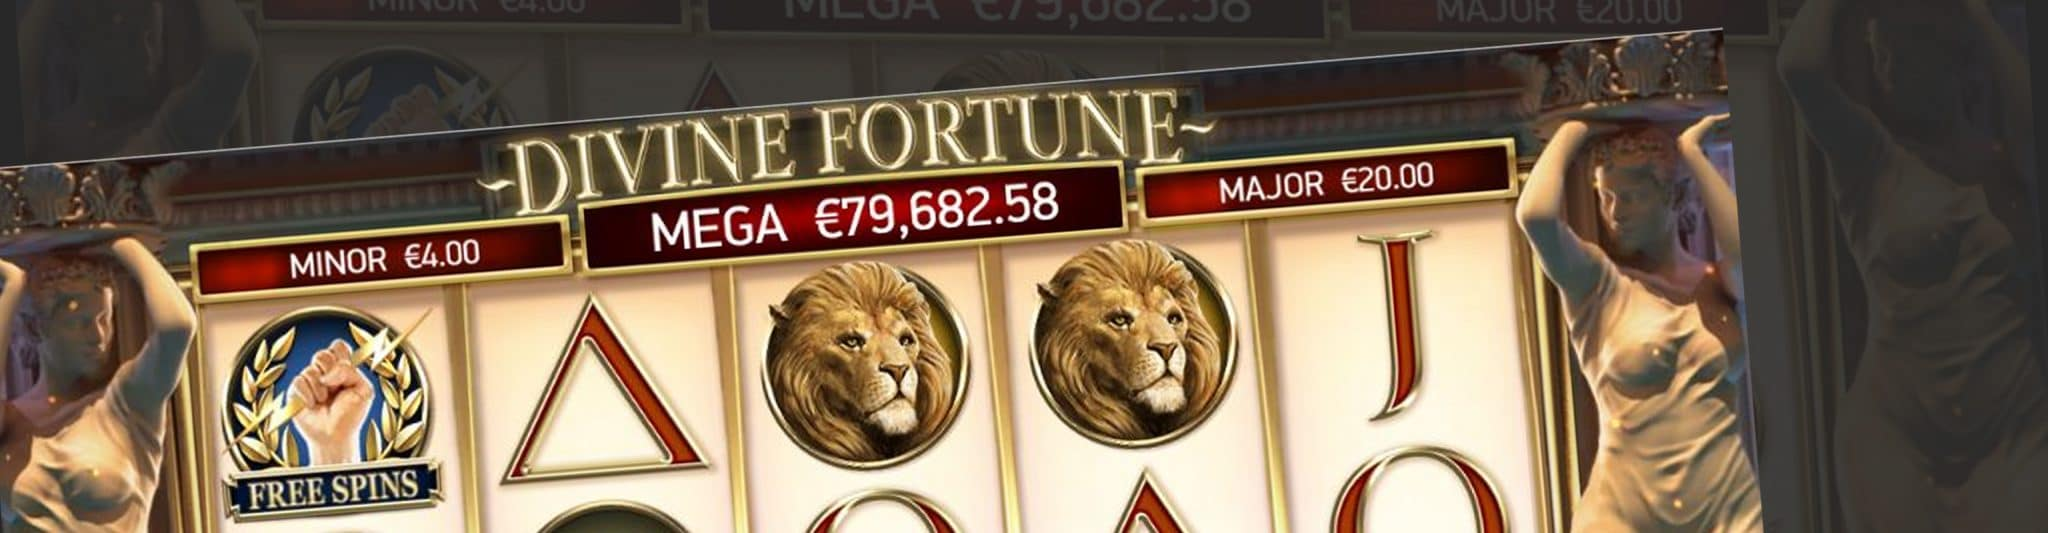 HollywoodCasino Player Wins Big on NetEnt's Divine Fortune Banner 01 - CasinoTop